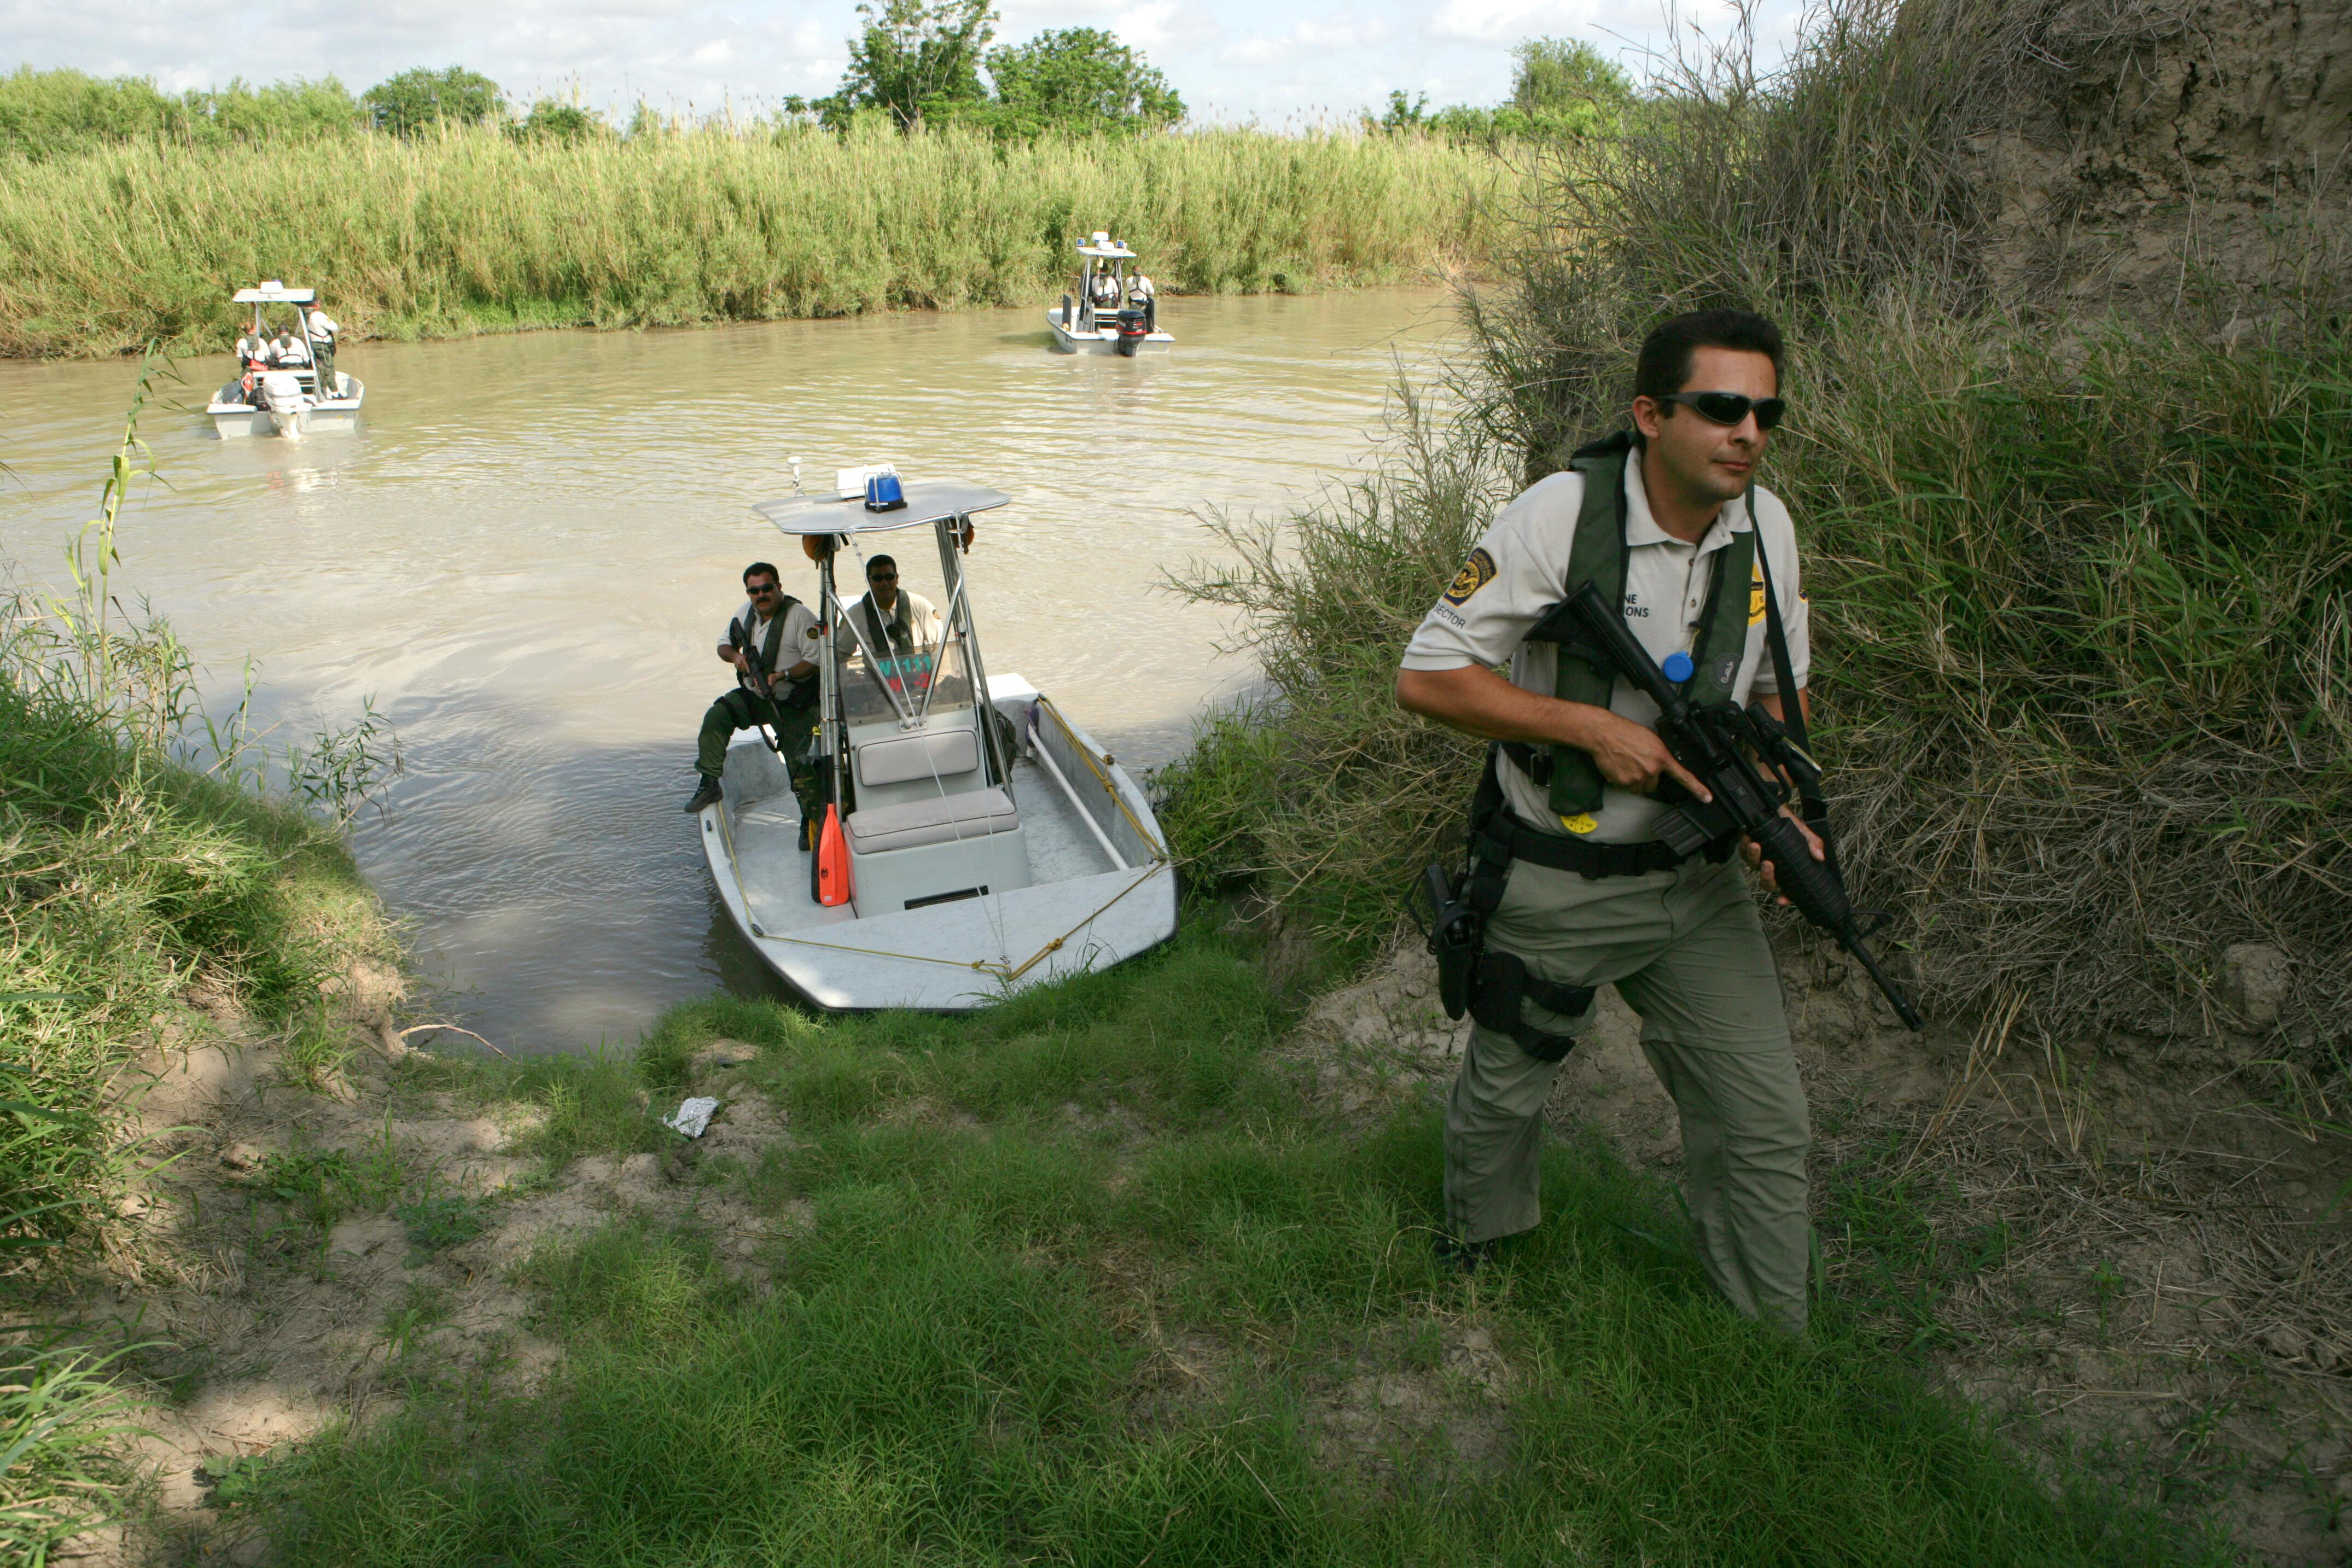 A CBP Border Patrol Agent investigates a potential landing area for illegal immigrants along the Rio Grande River in Texas.